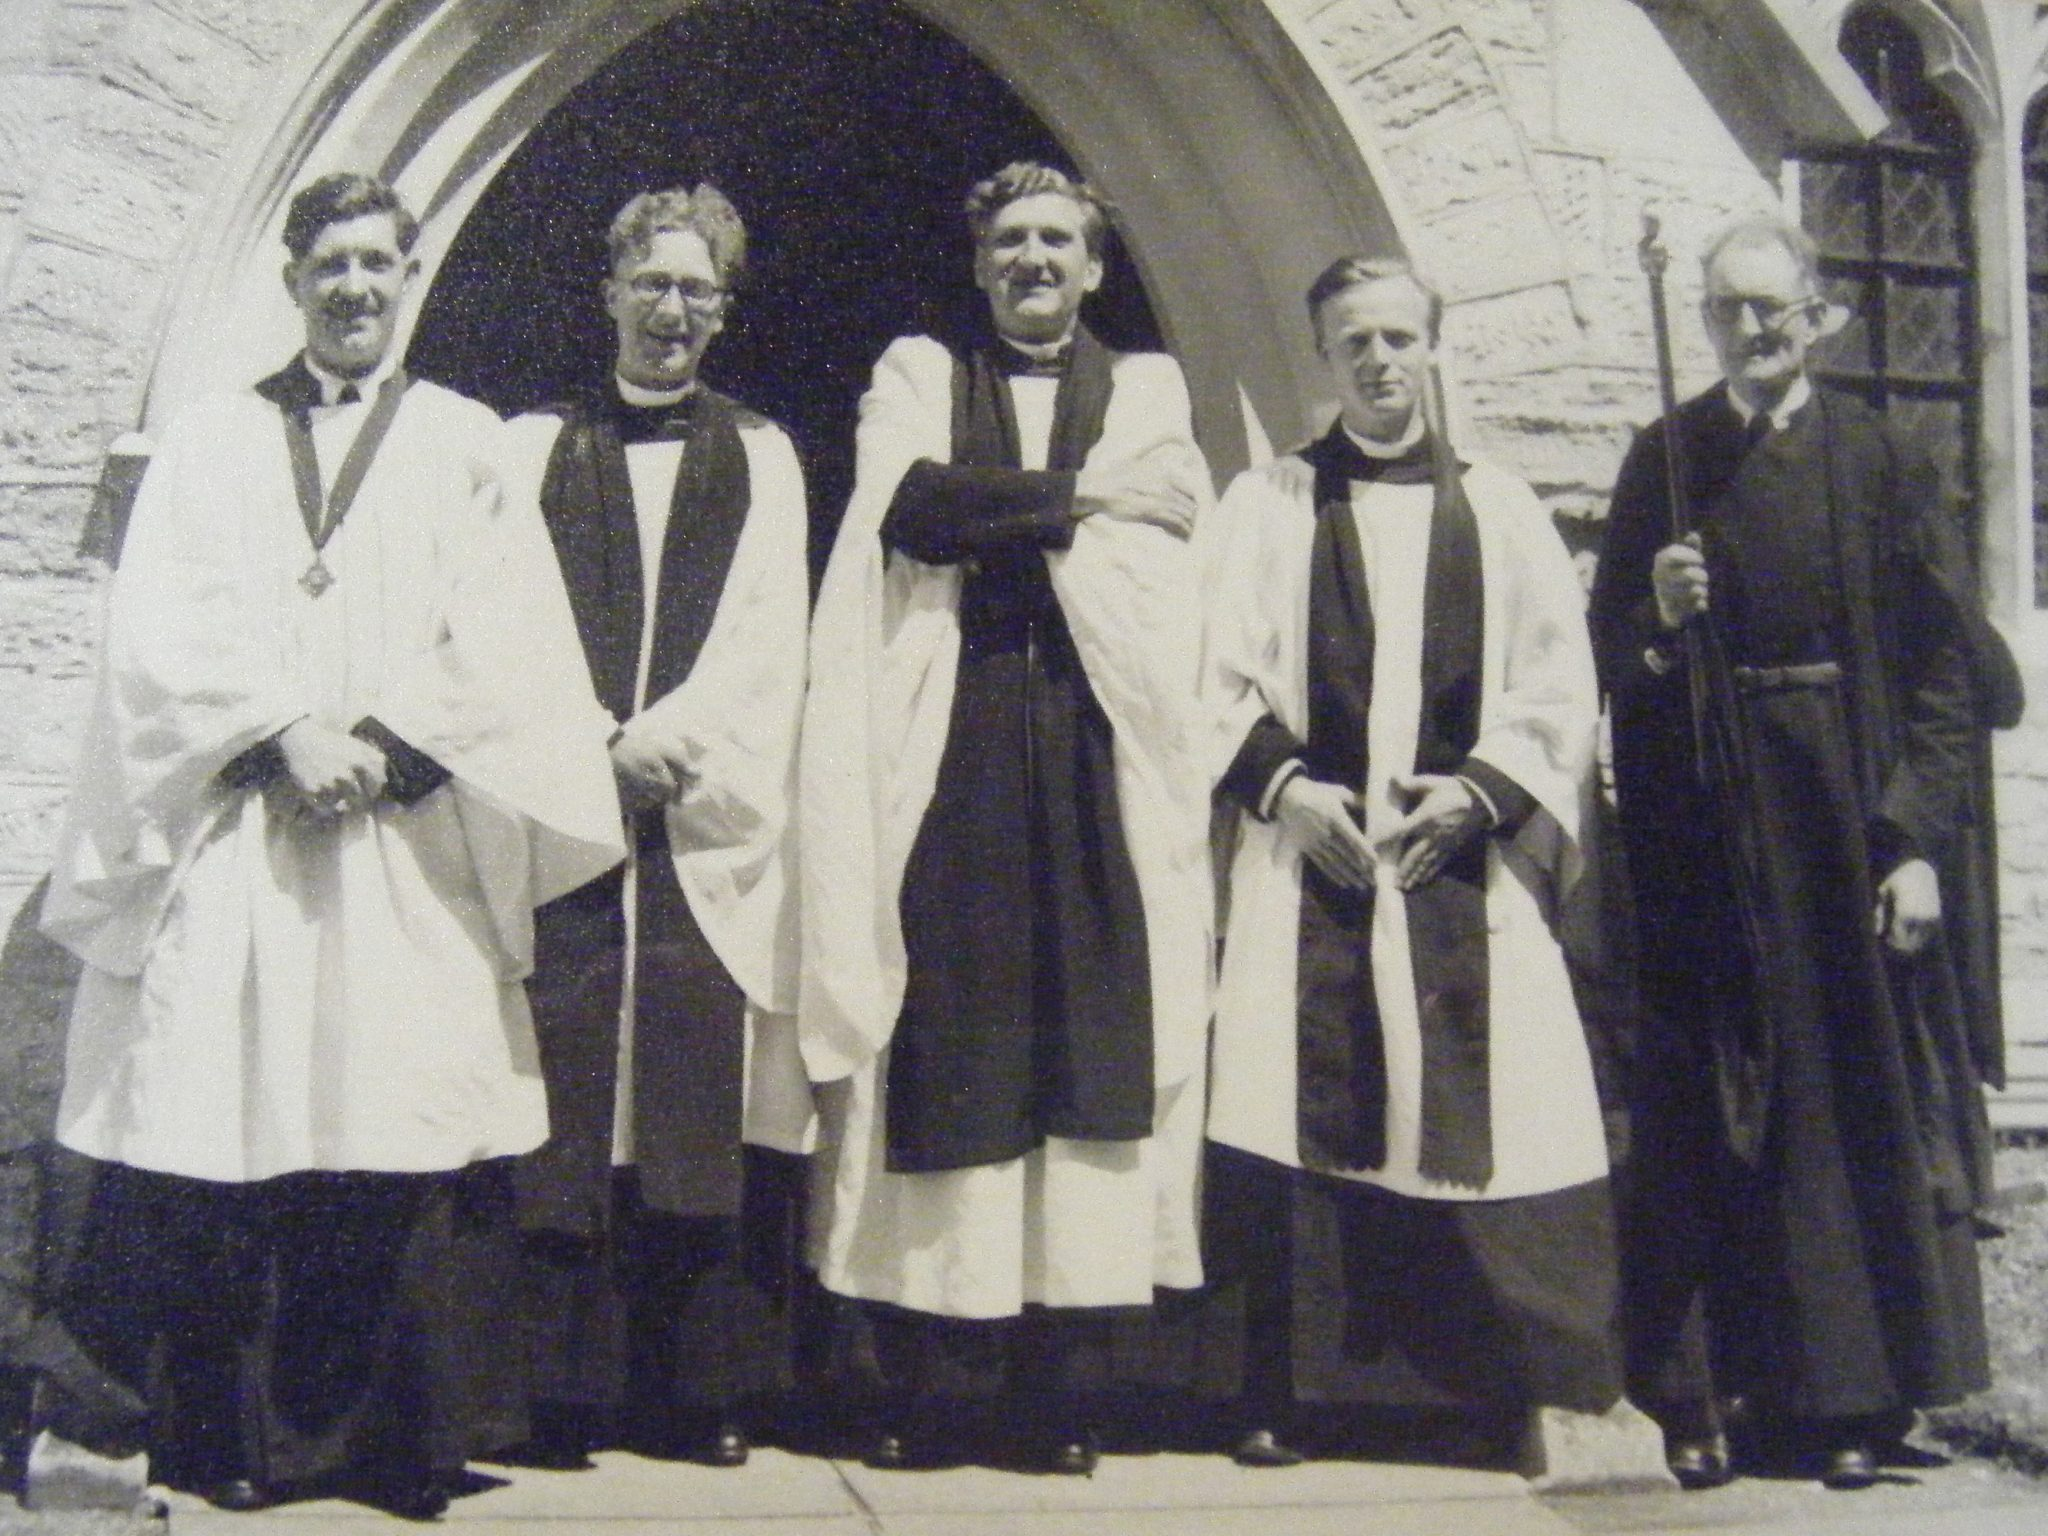 Photograph of Highfield Church clergy taken June 1955